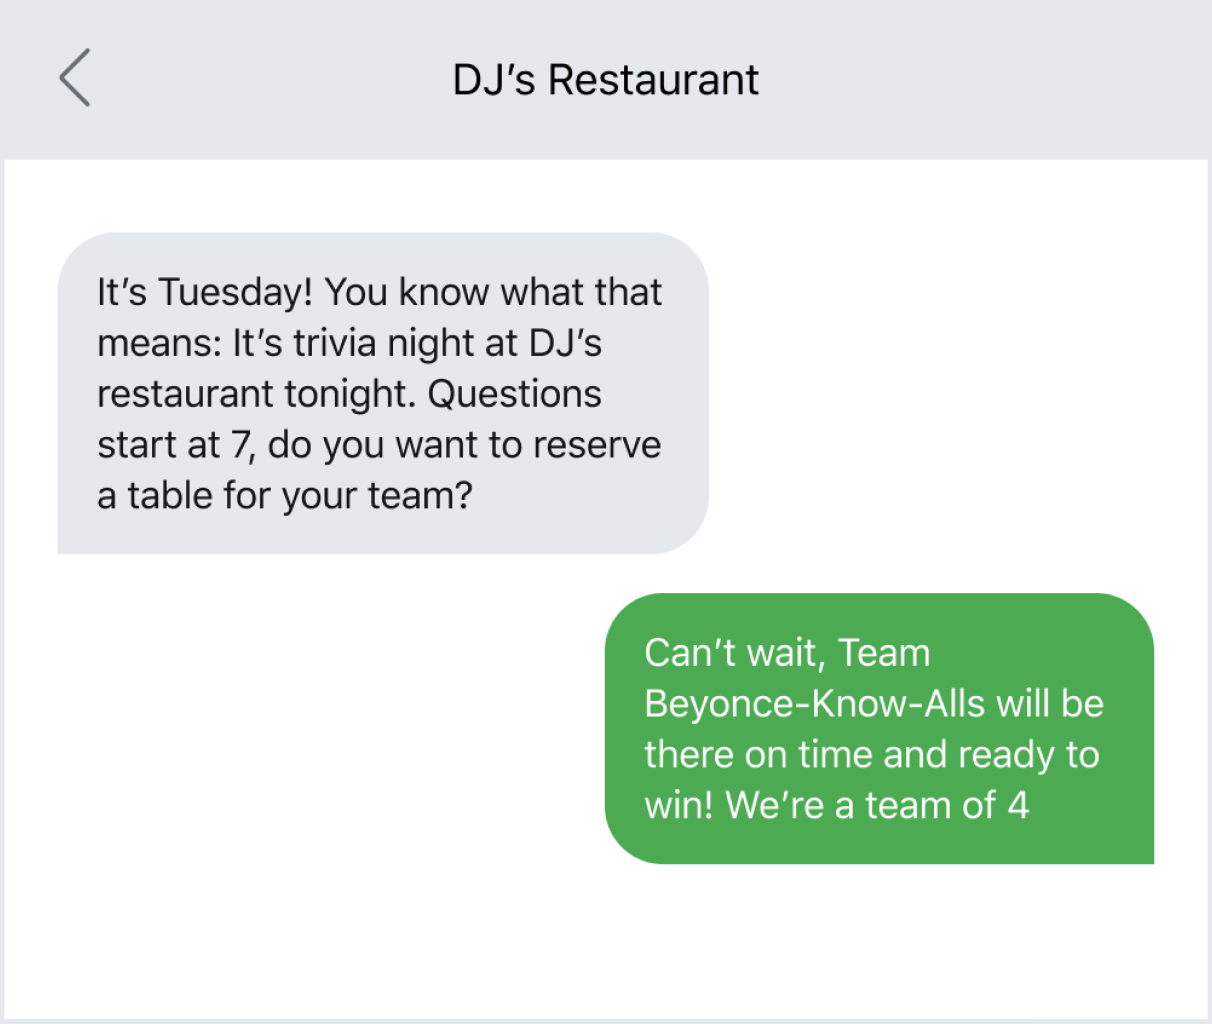 Example of sending an event reminder via text